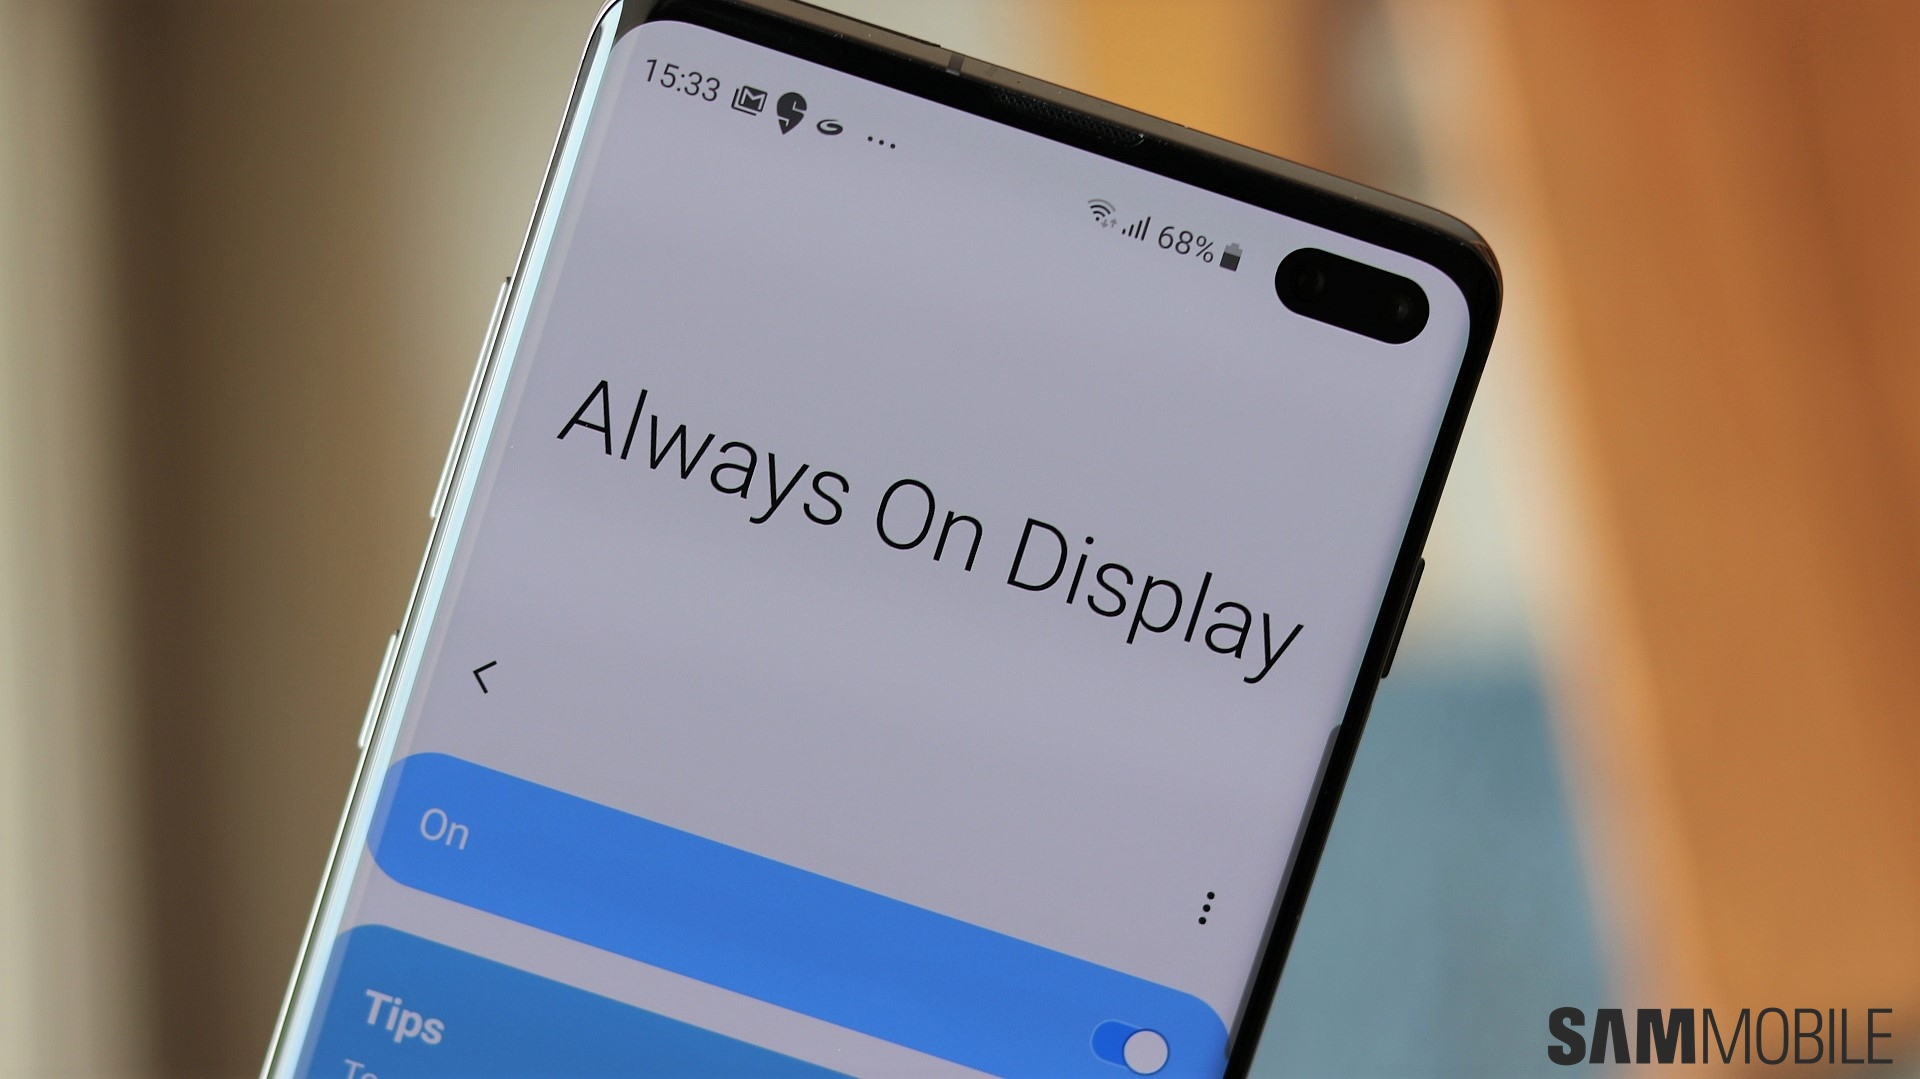 Galaxy S10 lets you use Always On Display in landscape